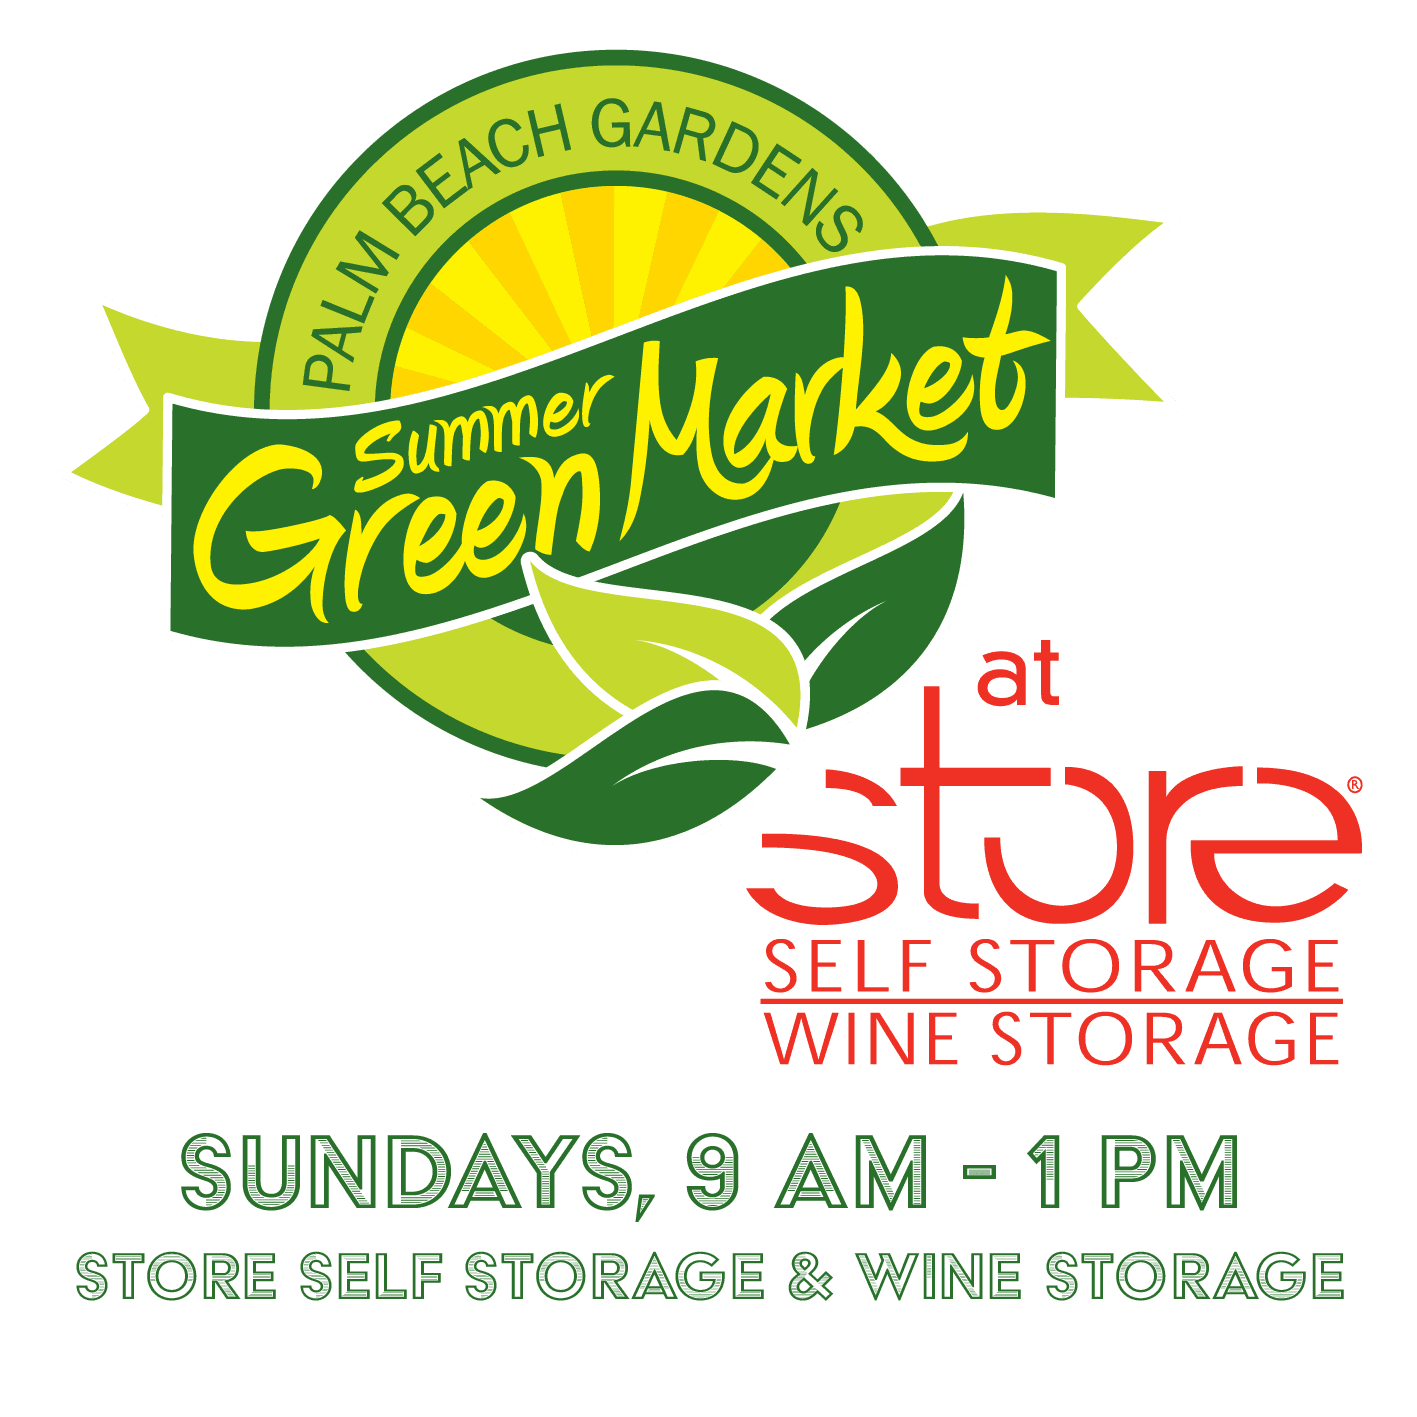 Summer GreenMarket- Sundays at 9 a.m. to 1 p.m. at STORE Self Storage & Wine Storage.